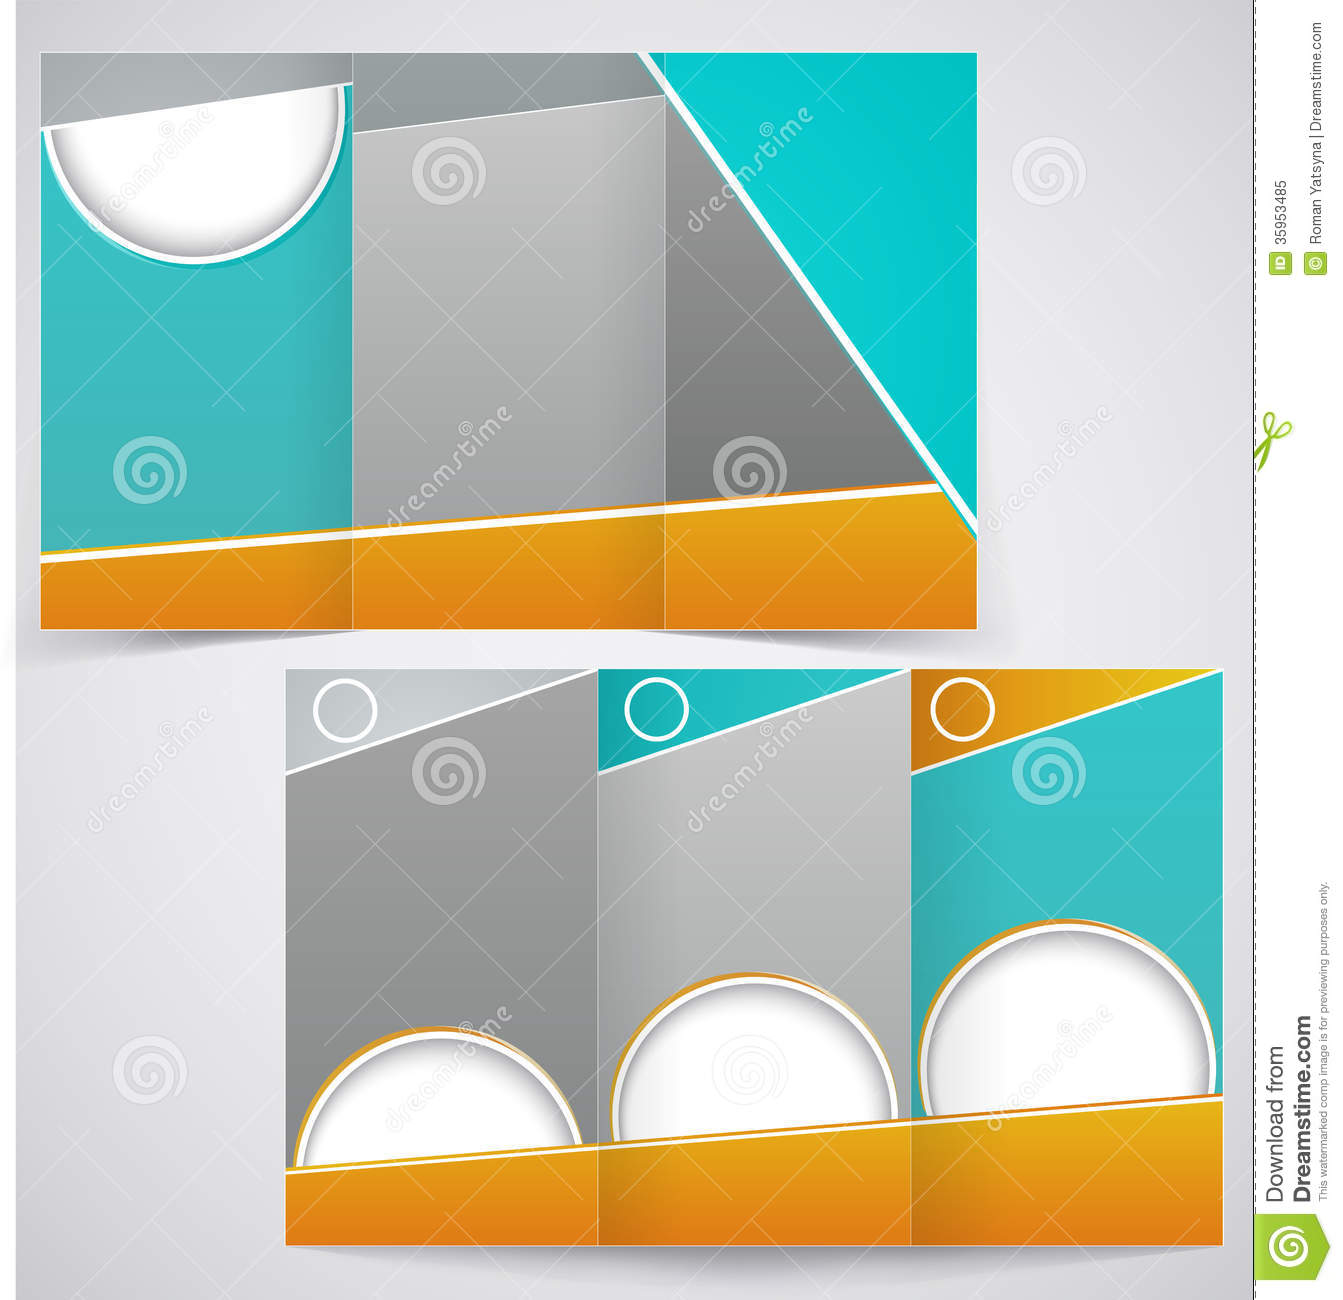 brochure templates free - vector brochure layout design with green and yello stock